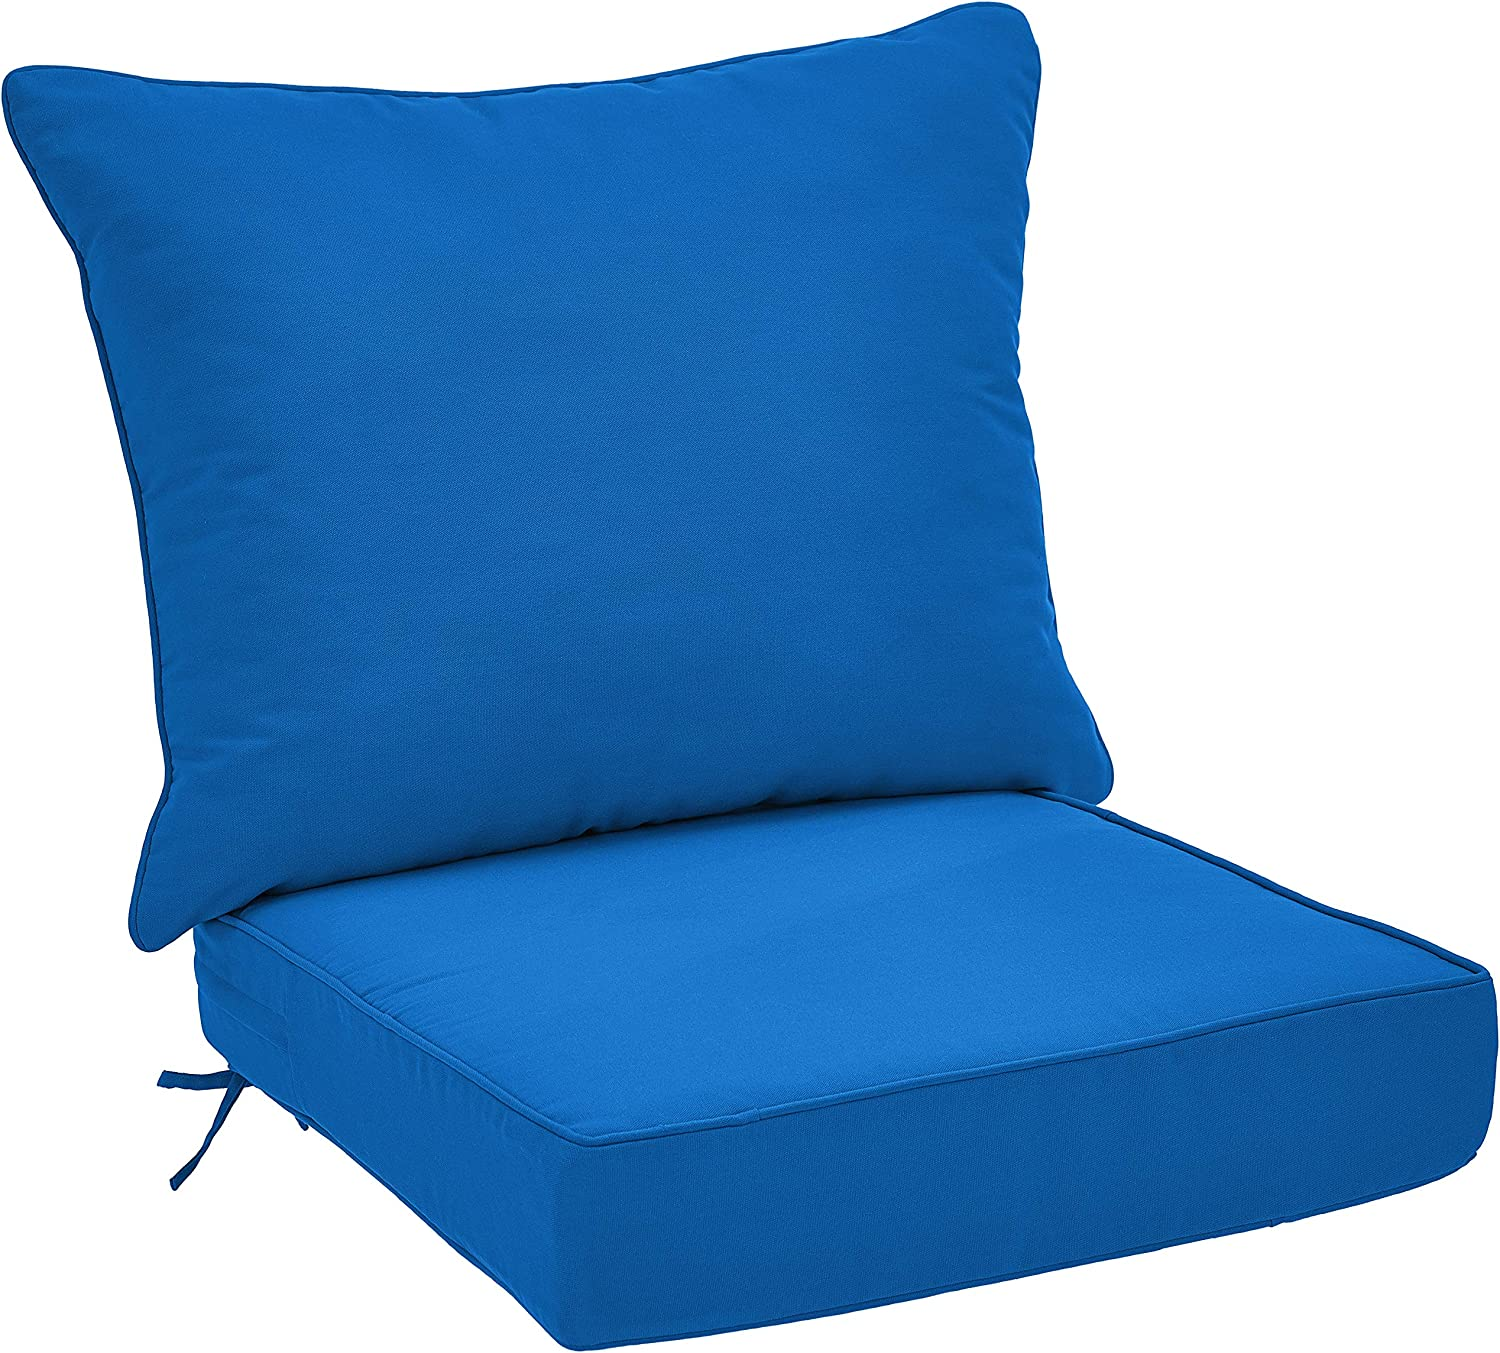 AmazonBasics Deep Seat Patio Seat and Back Cushion- Blue